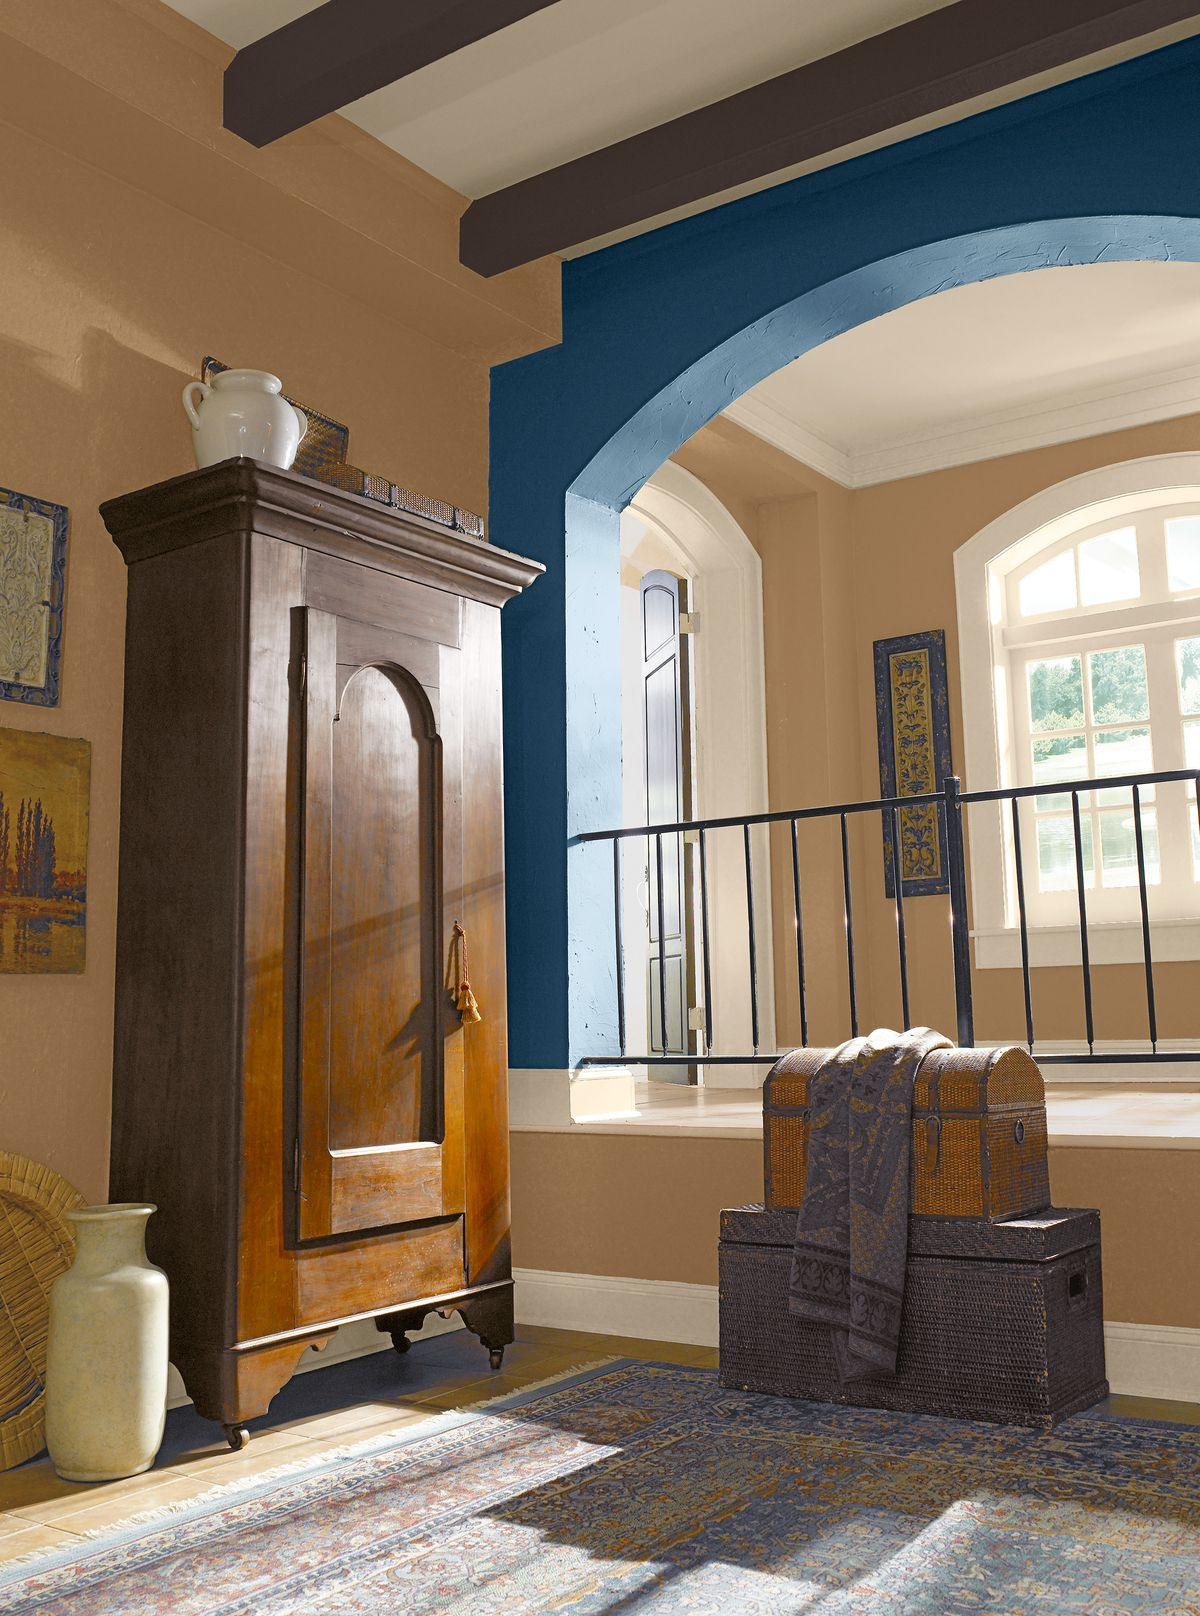 Spanish Revival Home With Blue And Beige Interior